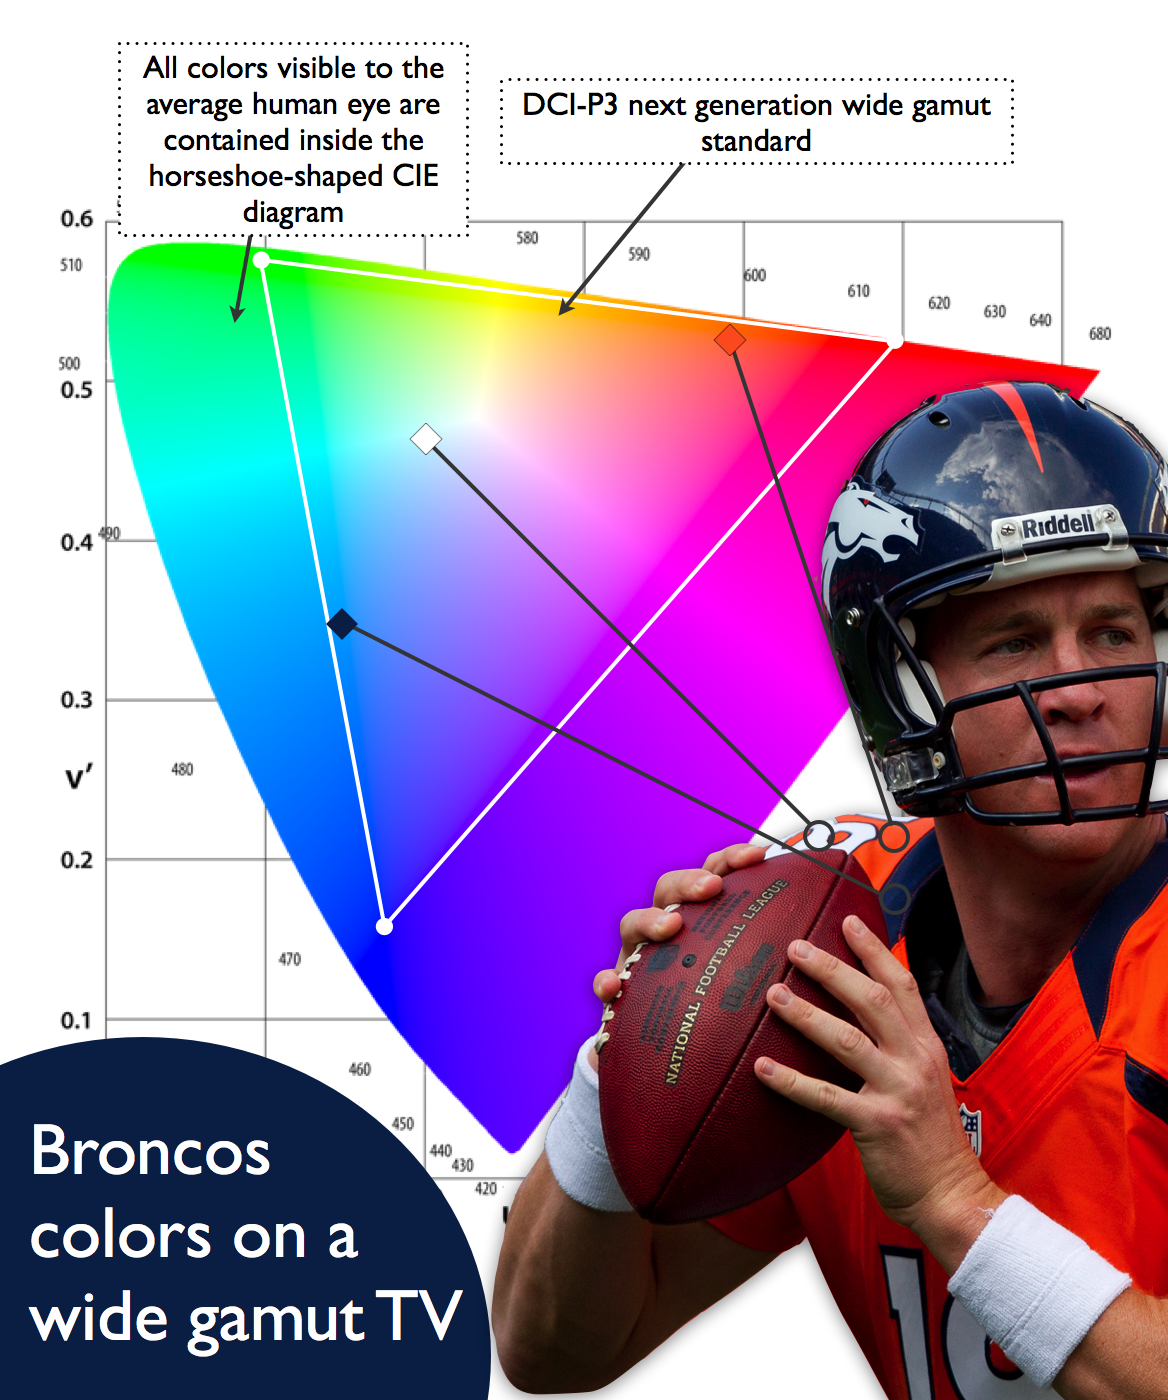 NFL Broncos team colors mapped against wide gamut DCI-P3 color gamut